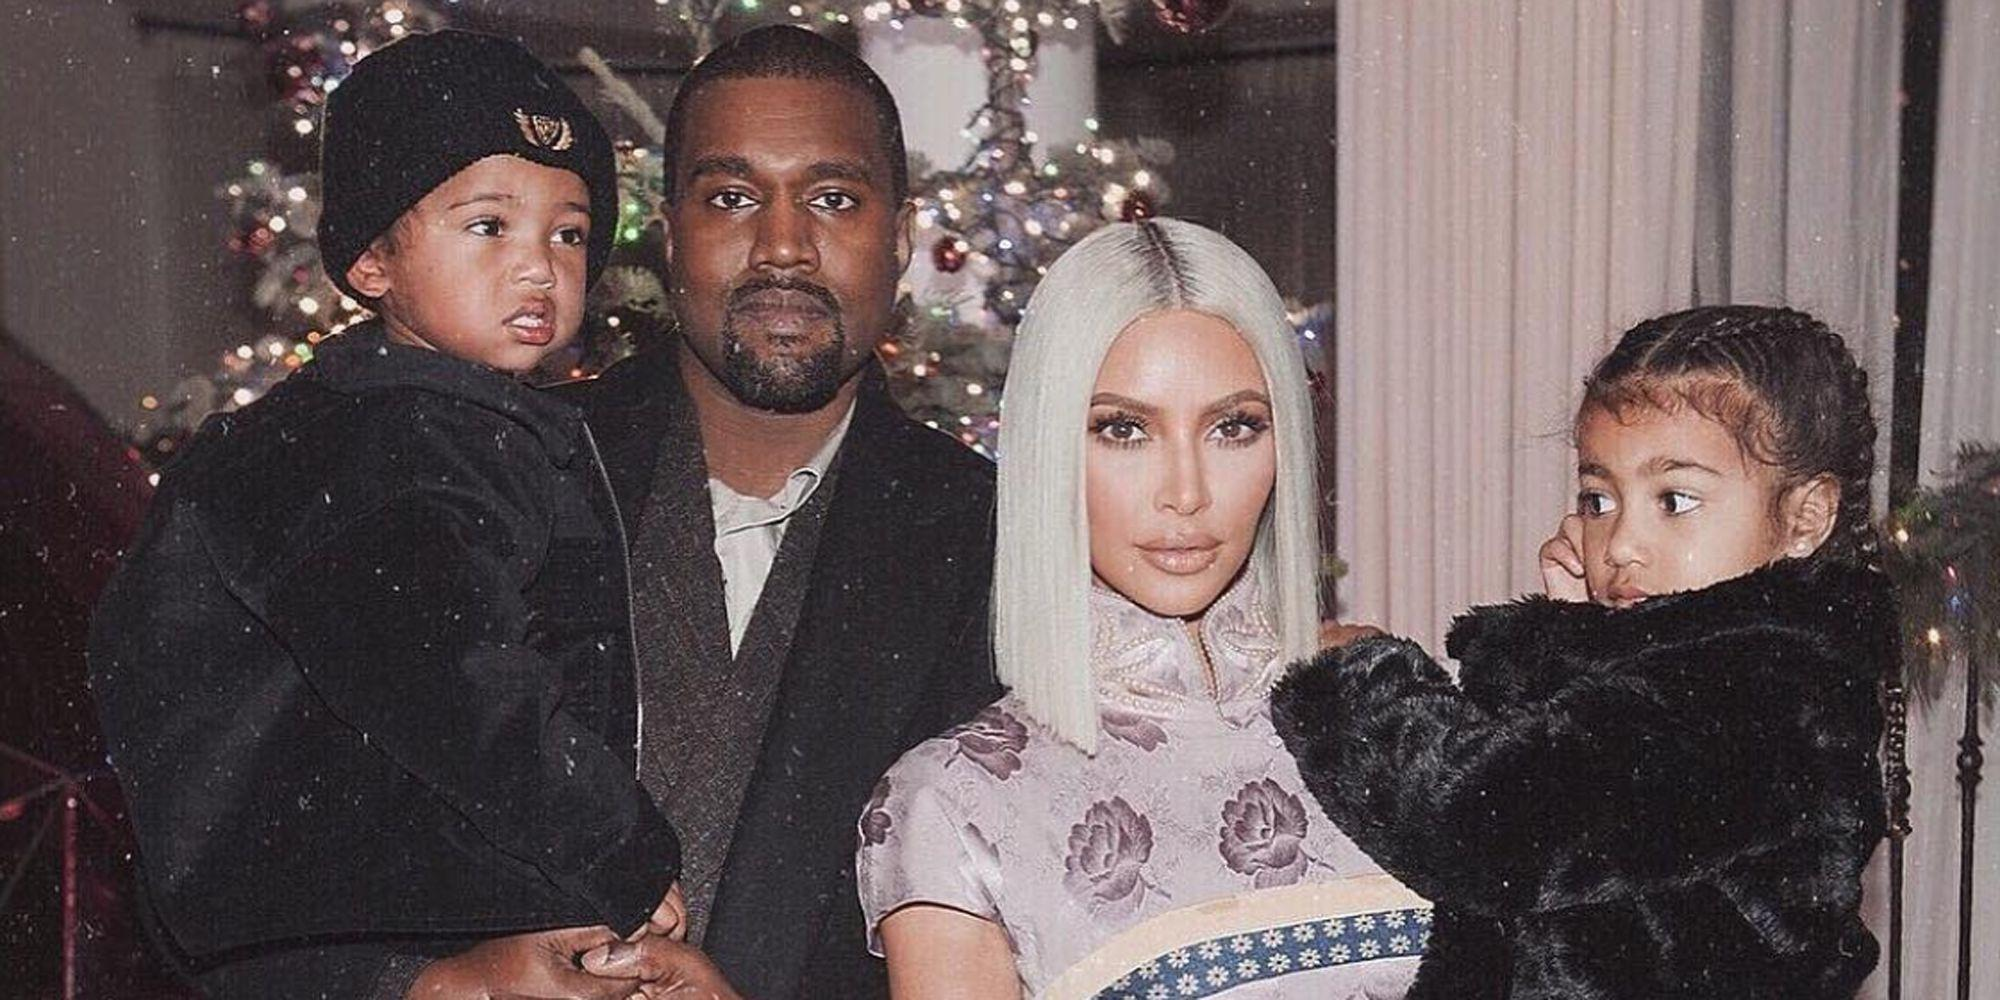 Kim Kardashian Tells Kanye She Cannot Move To Chicago -- Reveals She's At Her Breaking Point